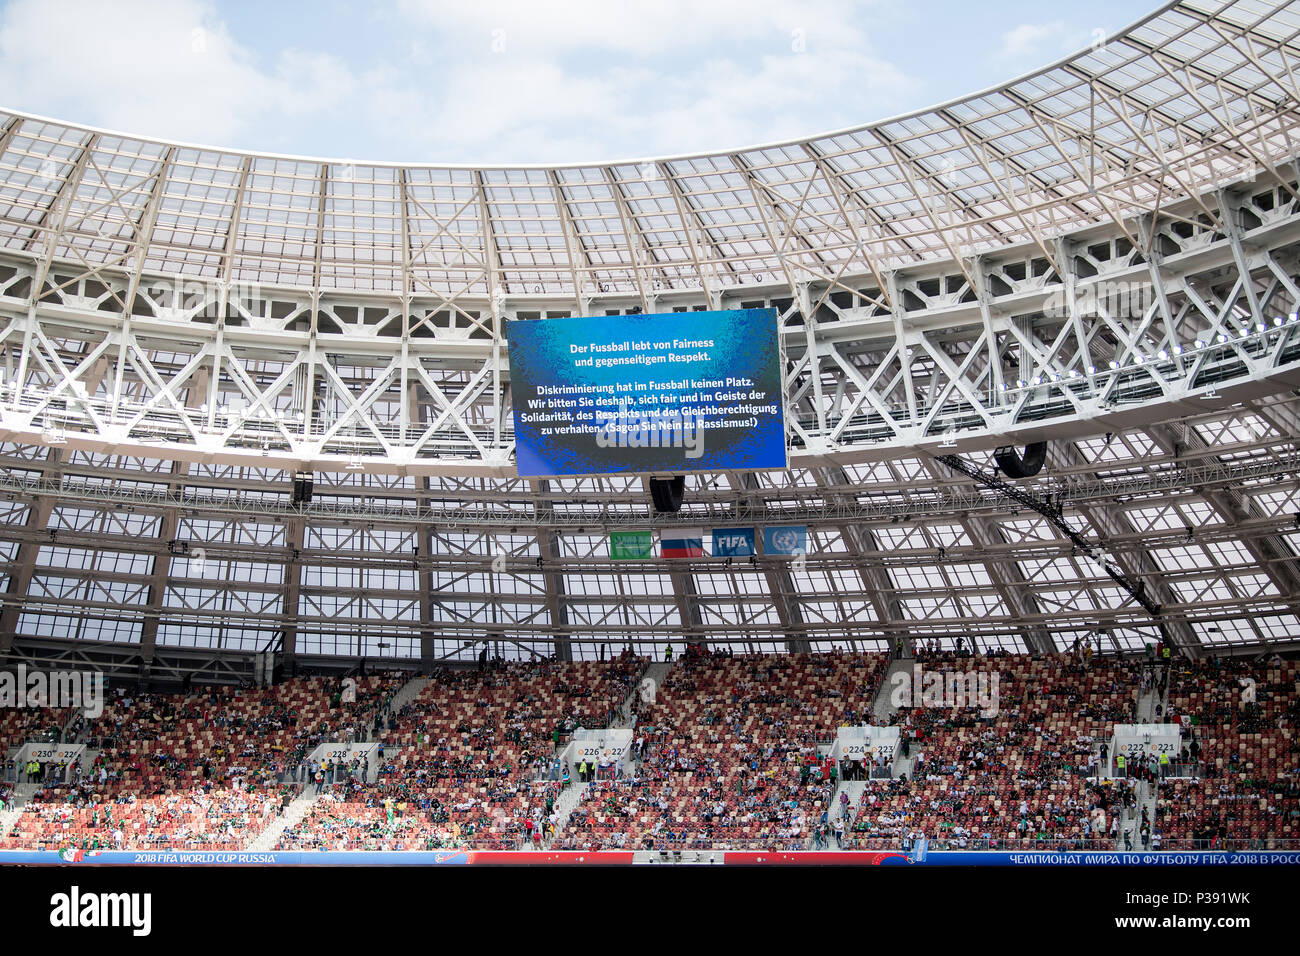 Moscow, Russland. 17th June, 2018. On the scoreboard is a hint for the fans that discrimination and racism have no place in the World Cup stadiums GES/Football/World Cup 2018 Russia: Germany - Mexico, 17.06.2018 GES/Soccer/Football/Worldcup 2018 Russia: Germany vs Mexico, Moscow, June 17, 2018 | usage worldwide Credit: dpa/Alamy Live News - Stock Image